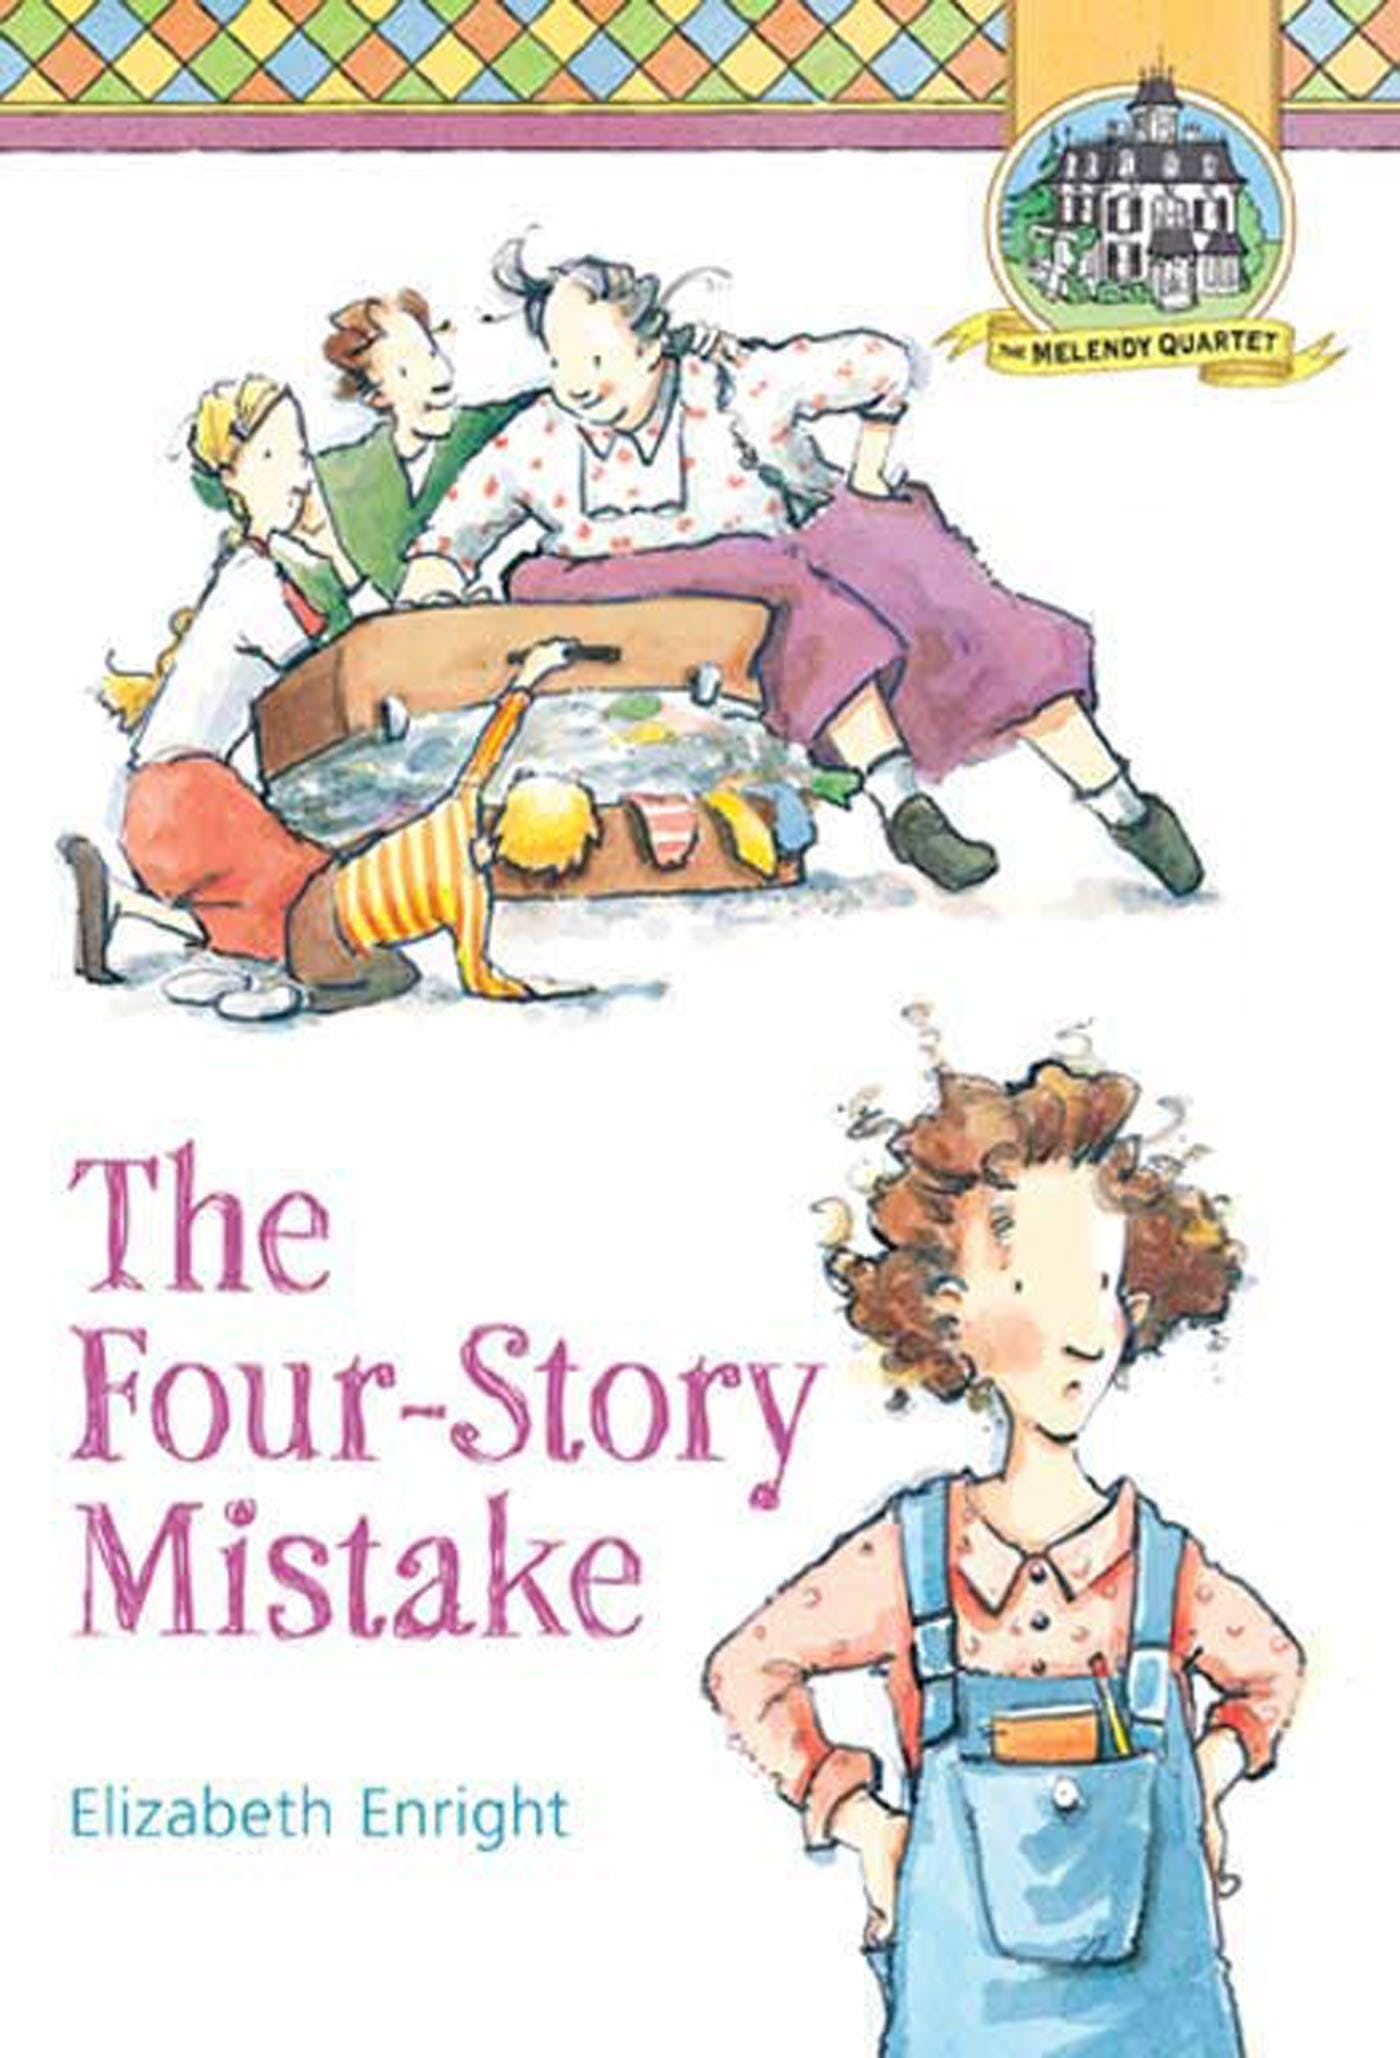 Image of The Four-Story Mistake